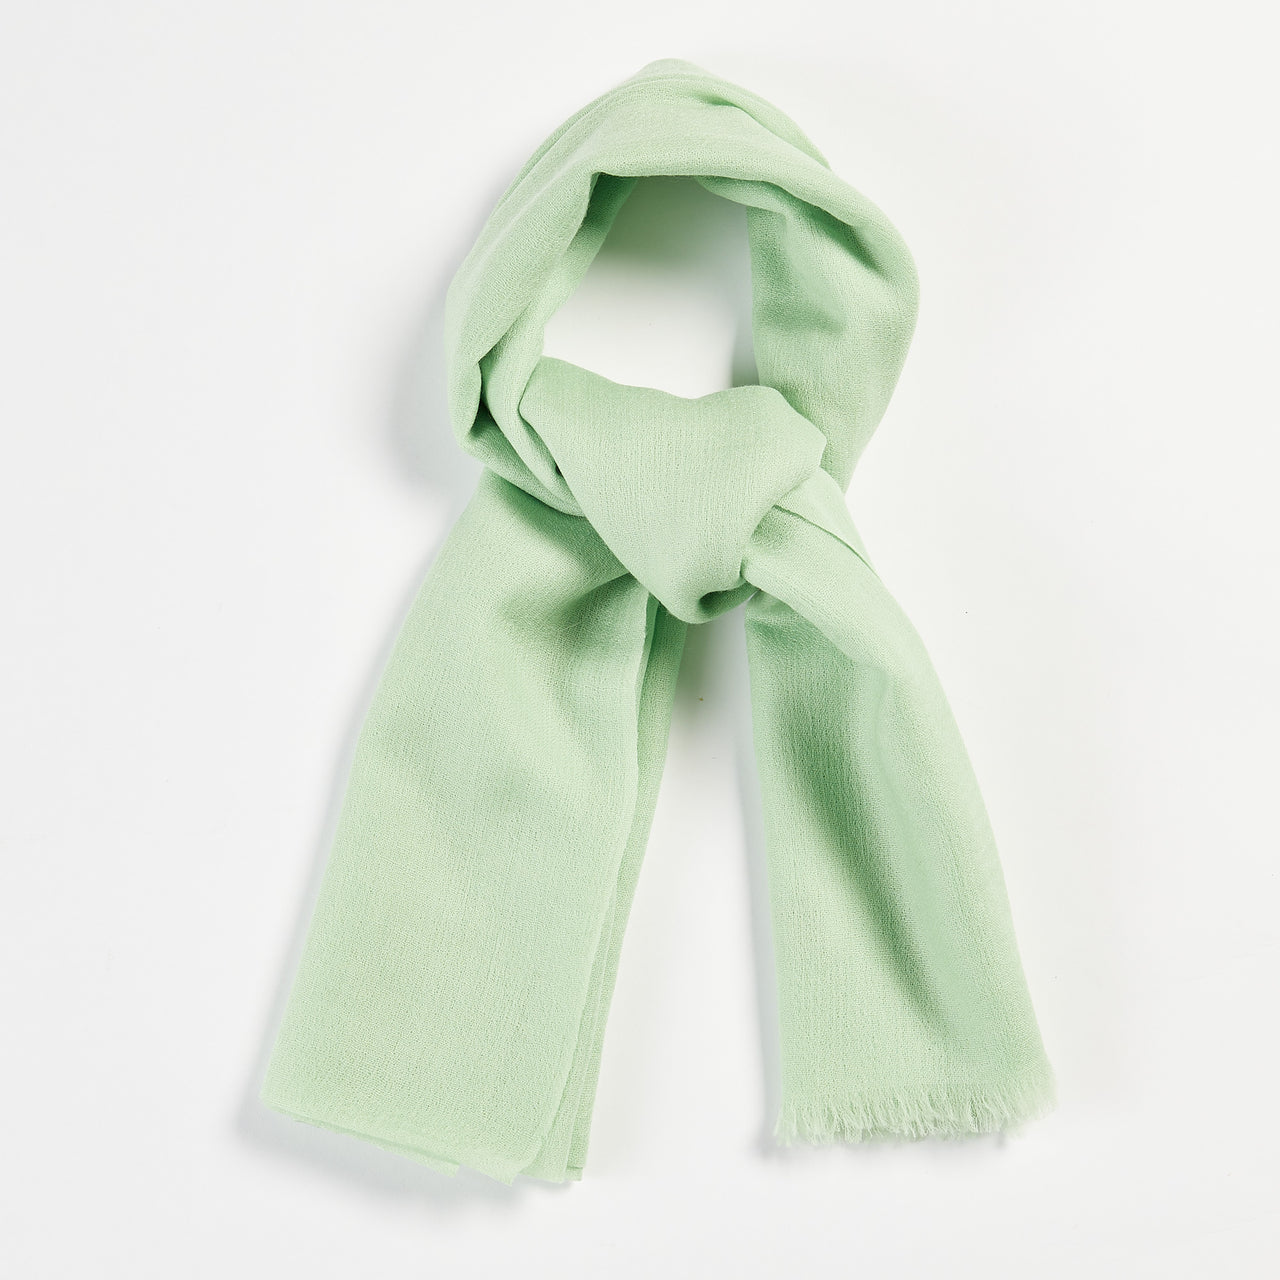 Superfine Wrap - Mint Green